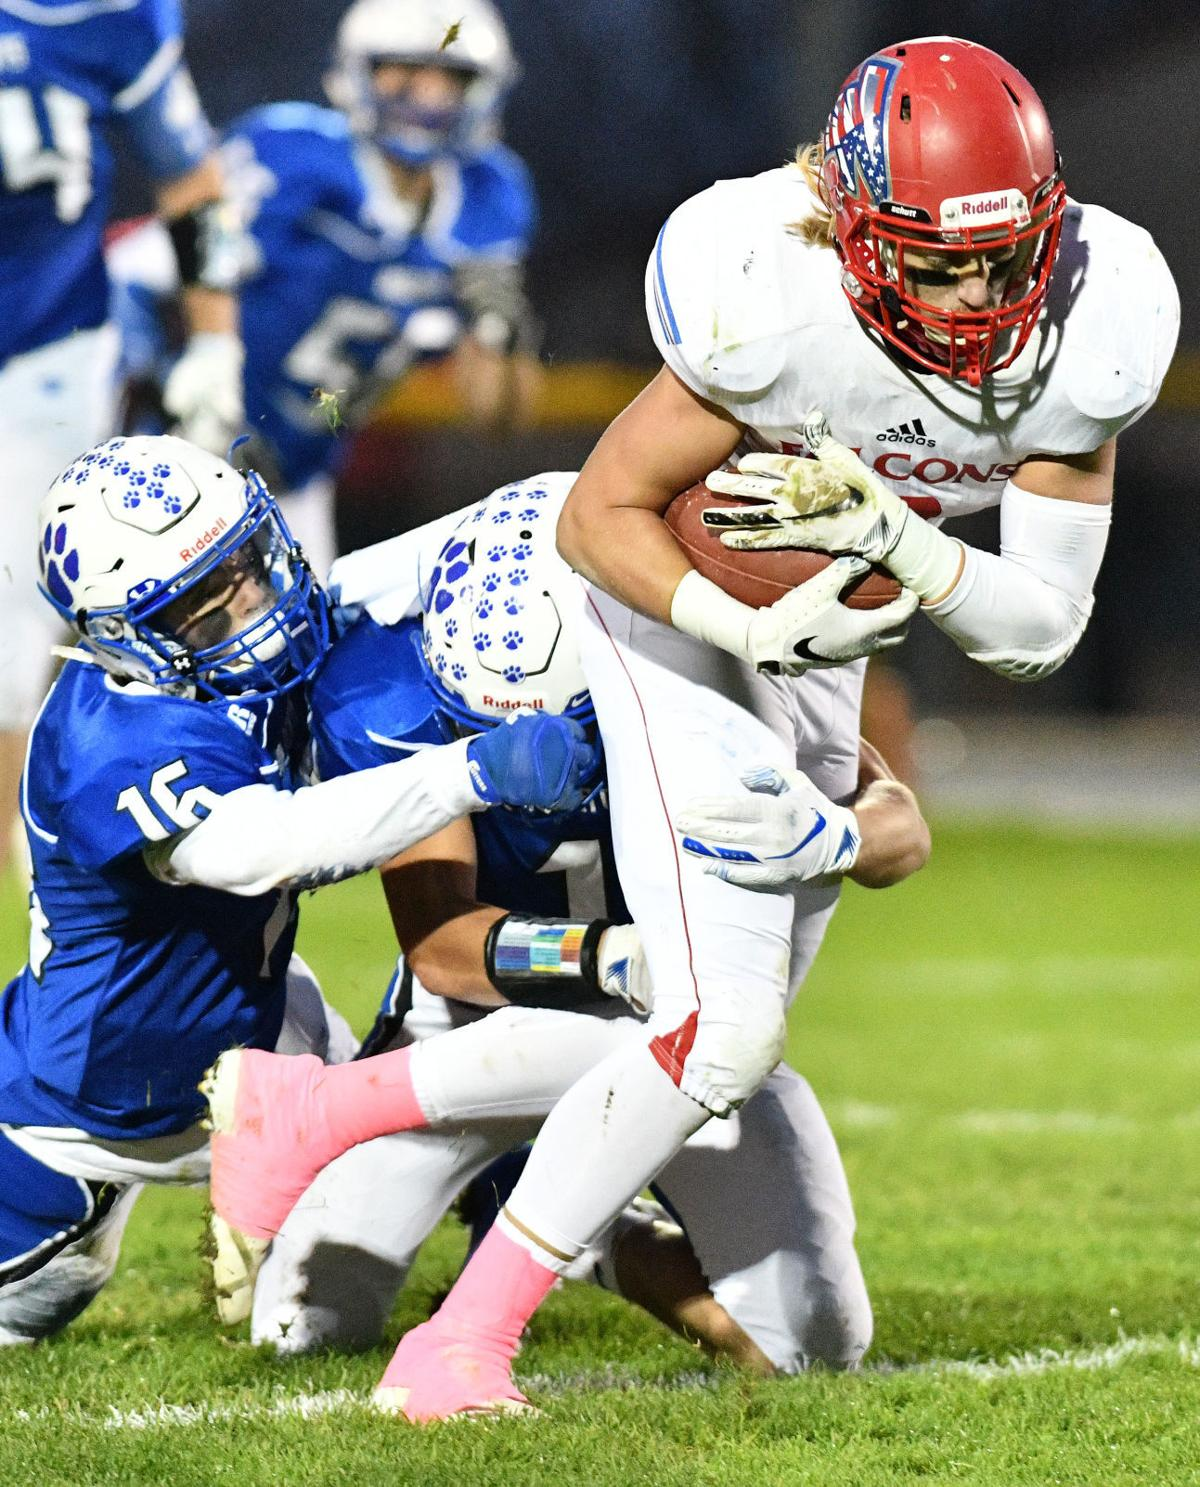 West Lyon vs West Sioux football